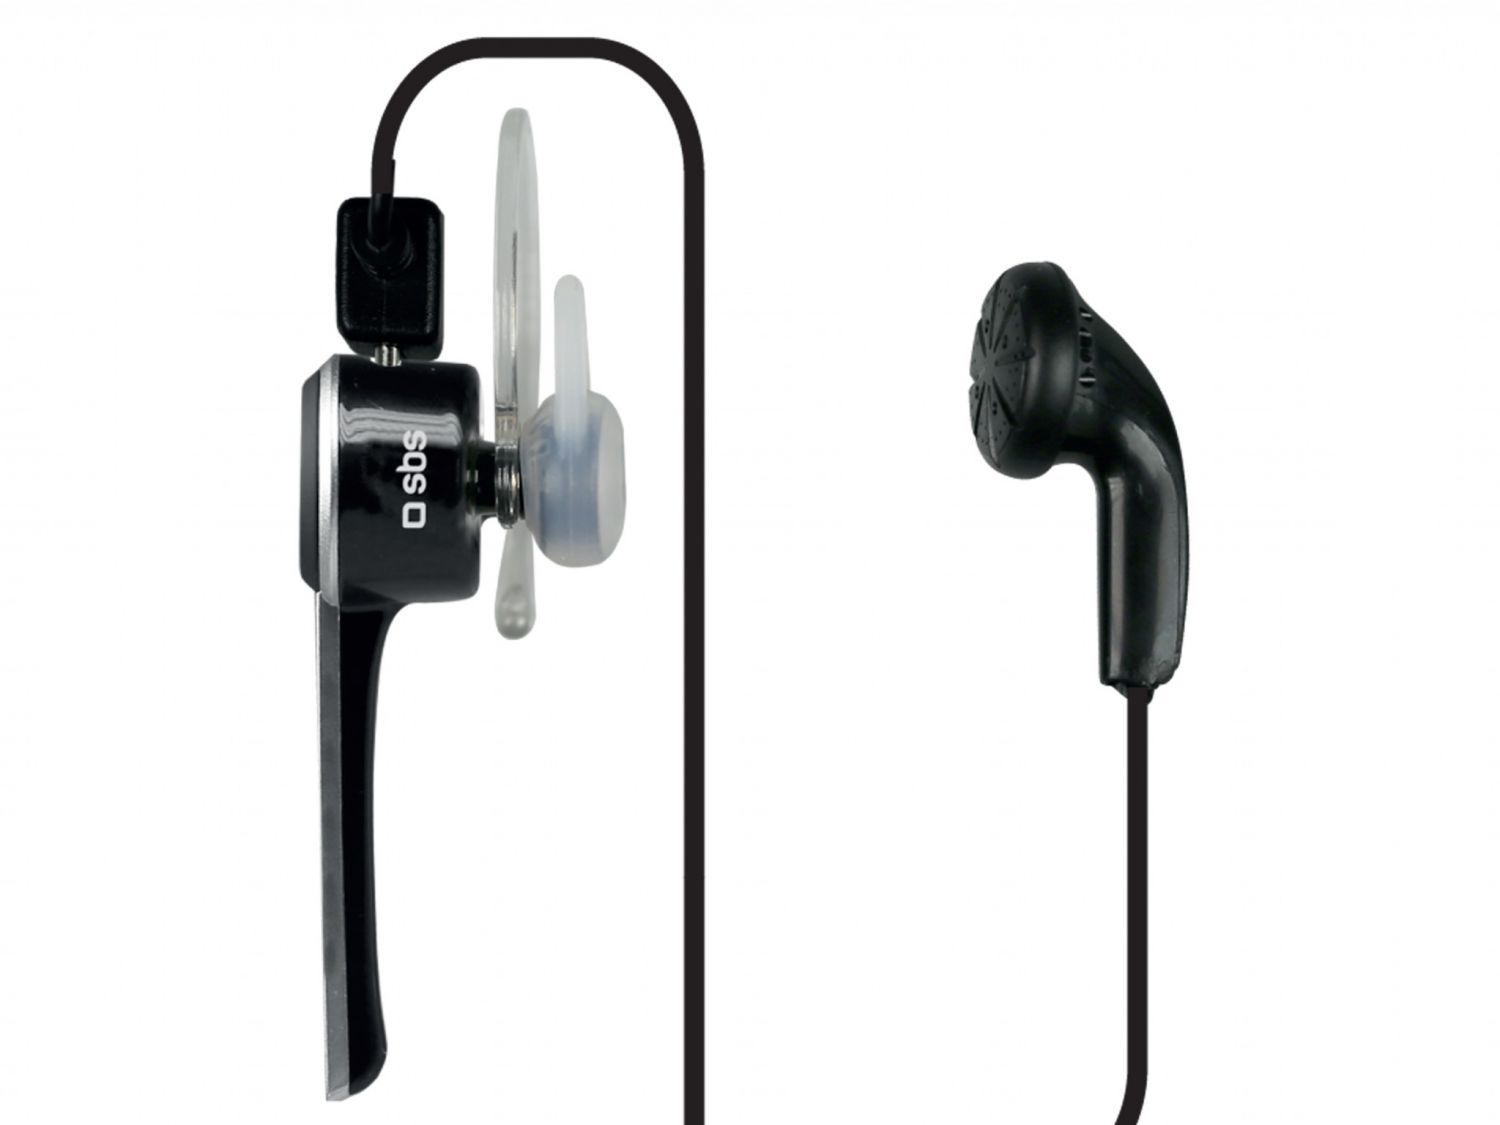 Sbs Bluetooth Headset With Multipoint Function Tech2tech